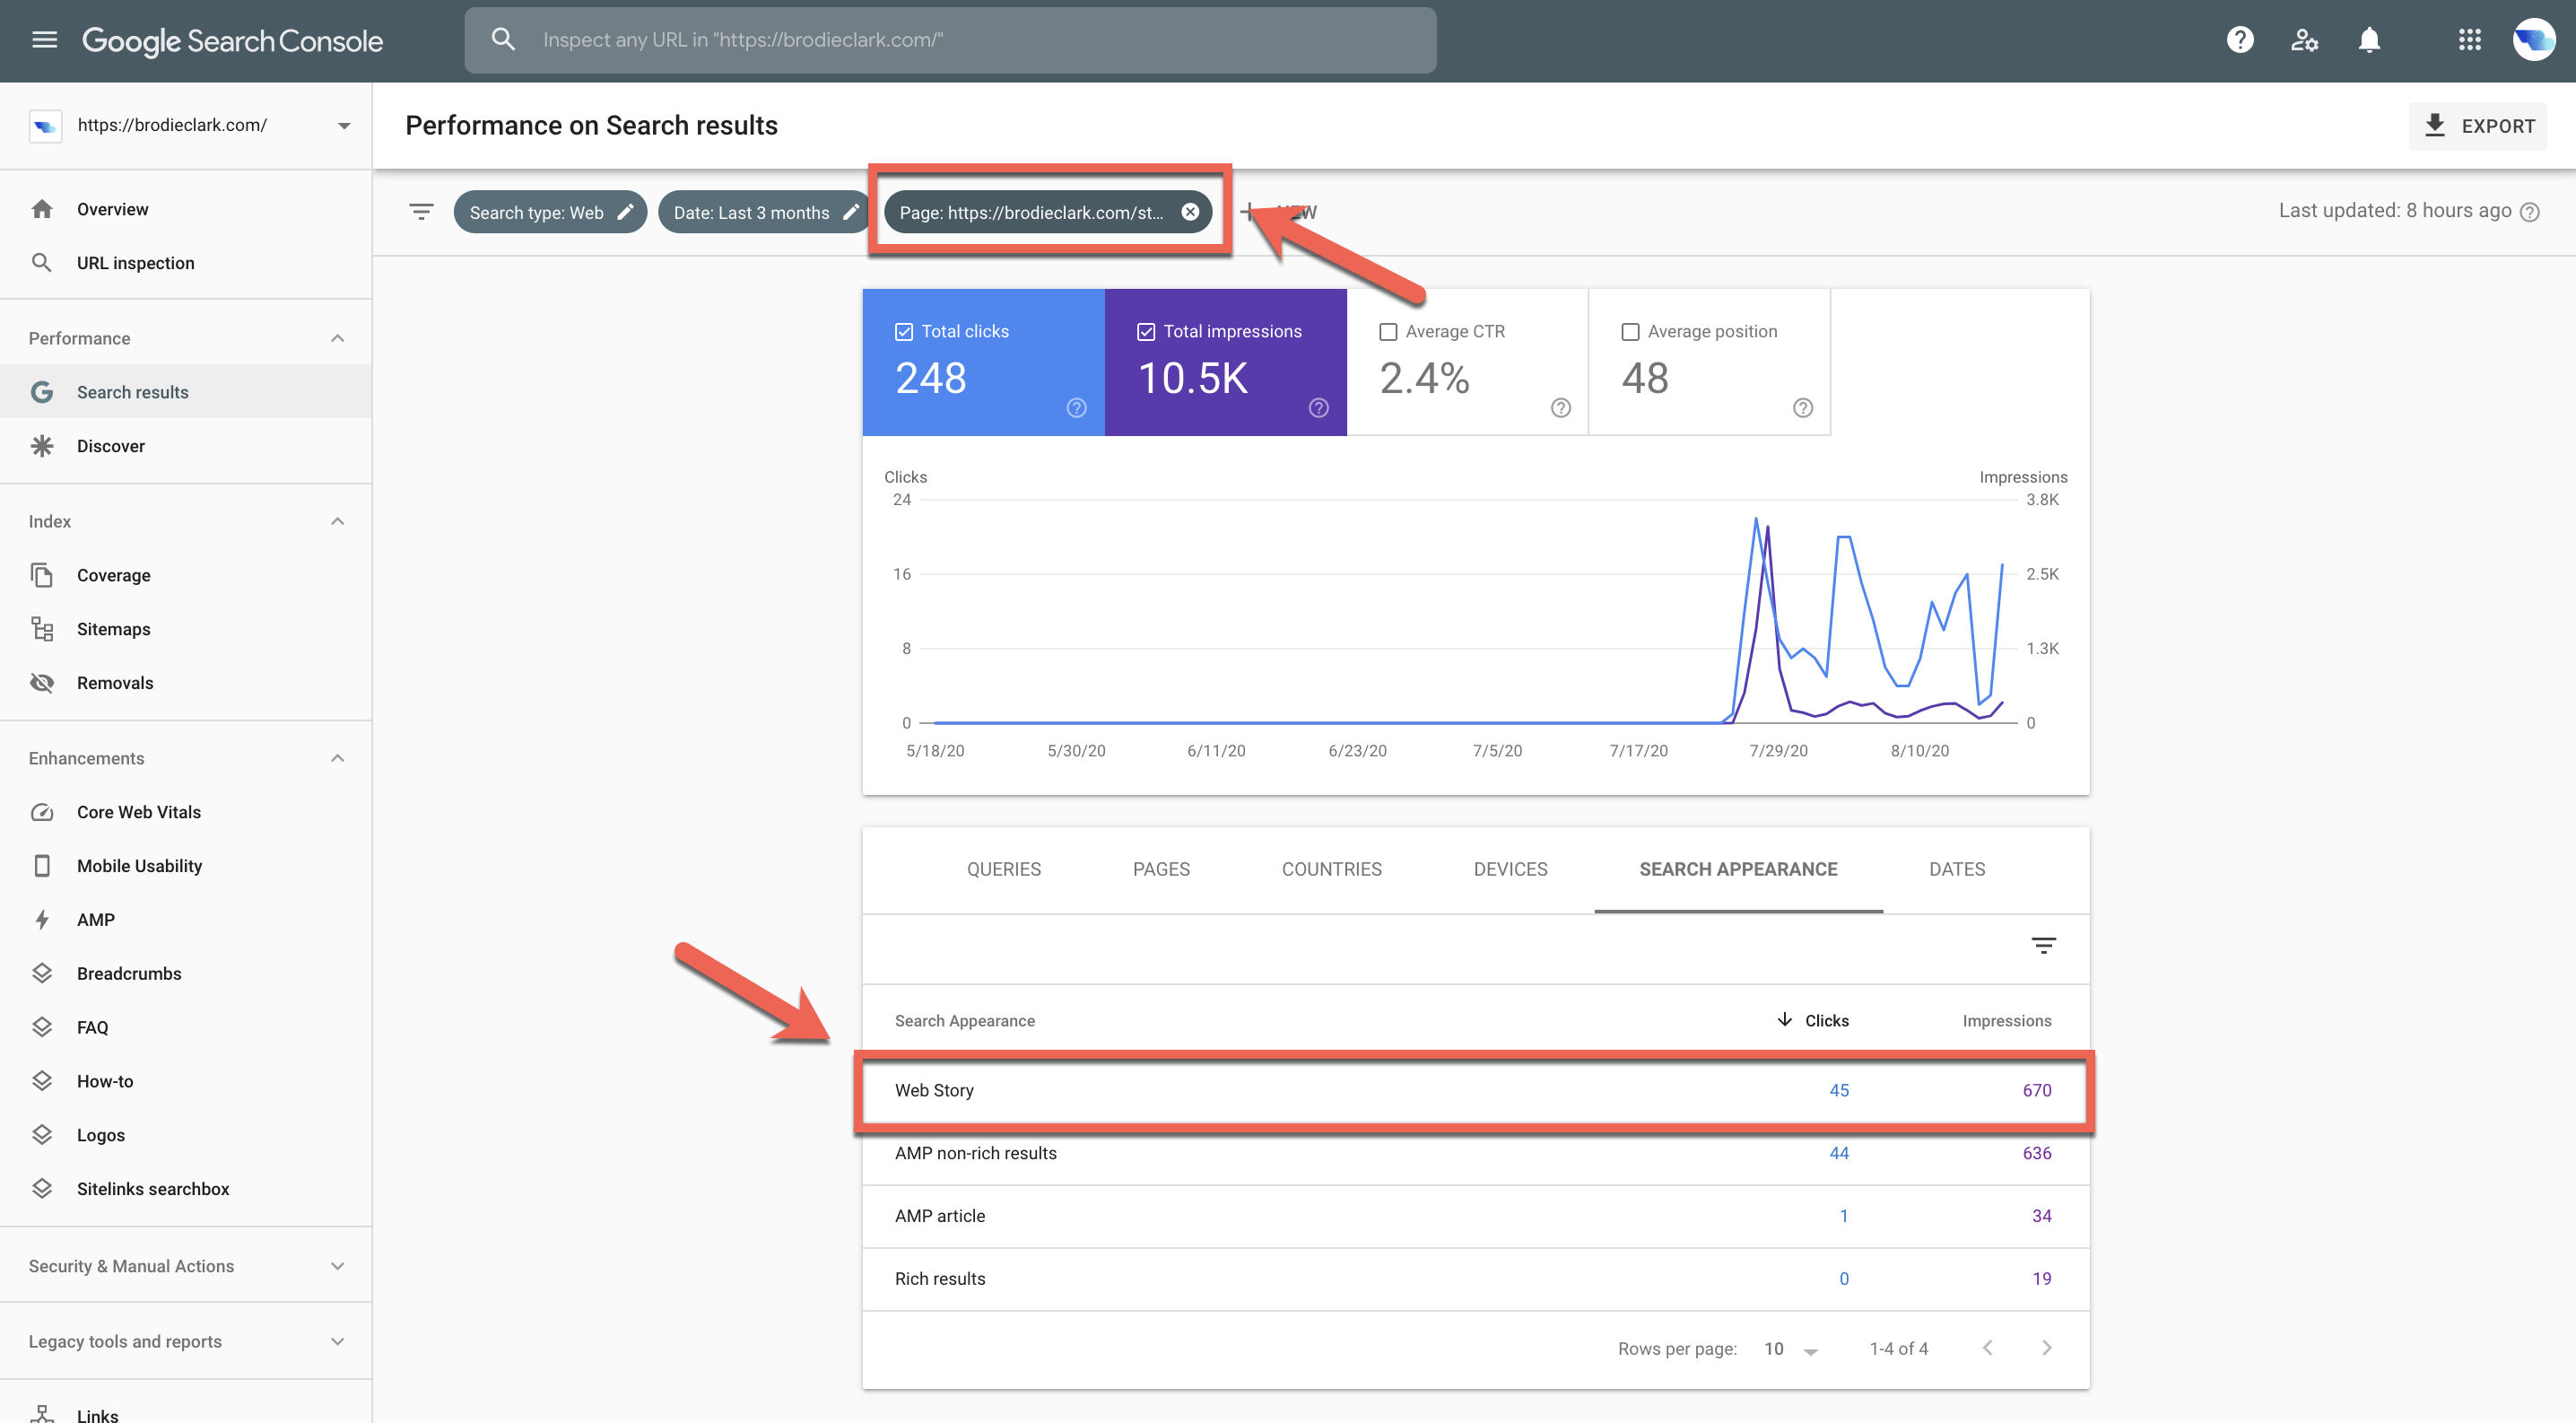 google search console url inspection tool for web stories